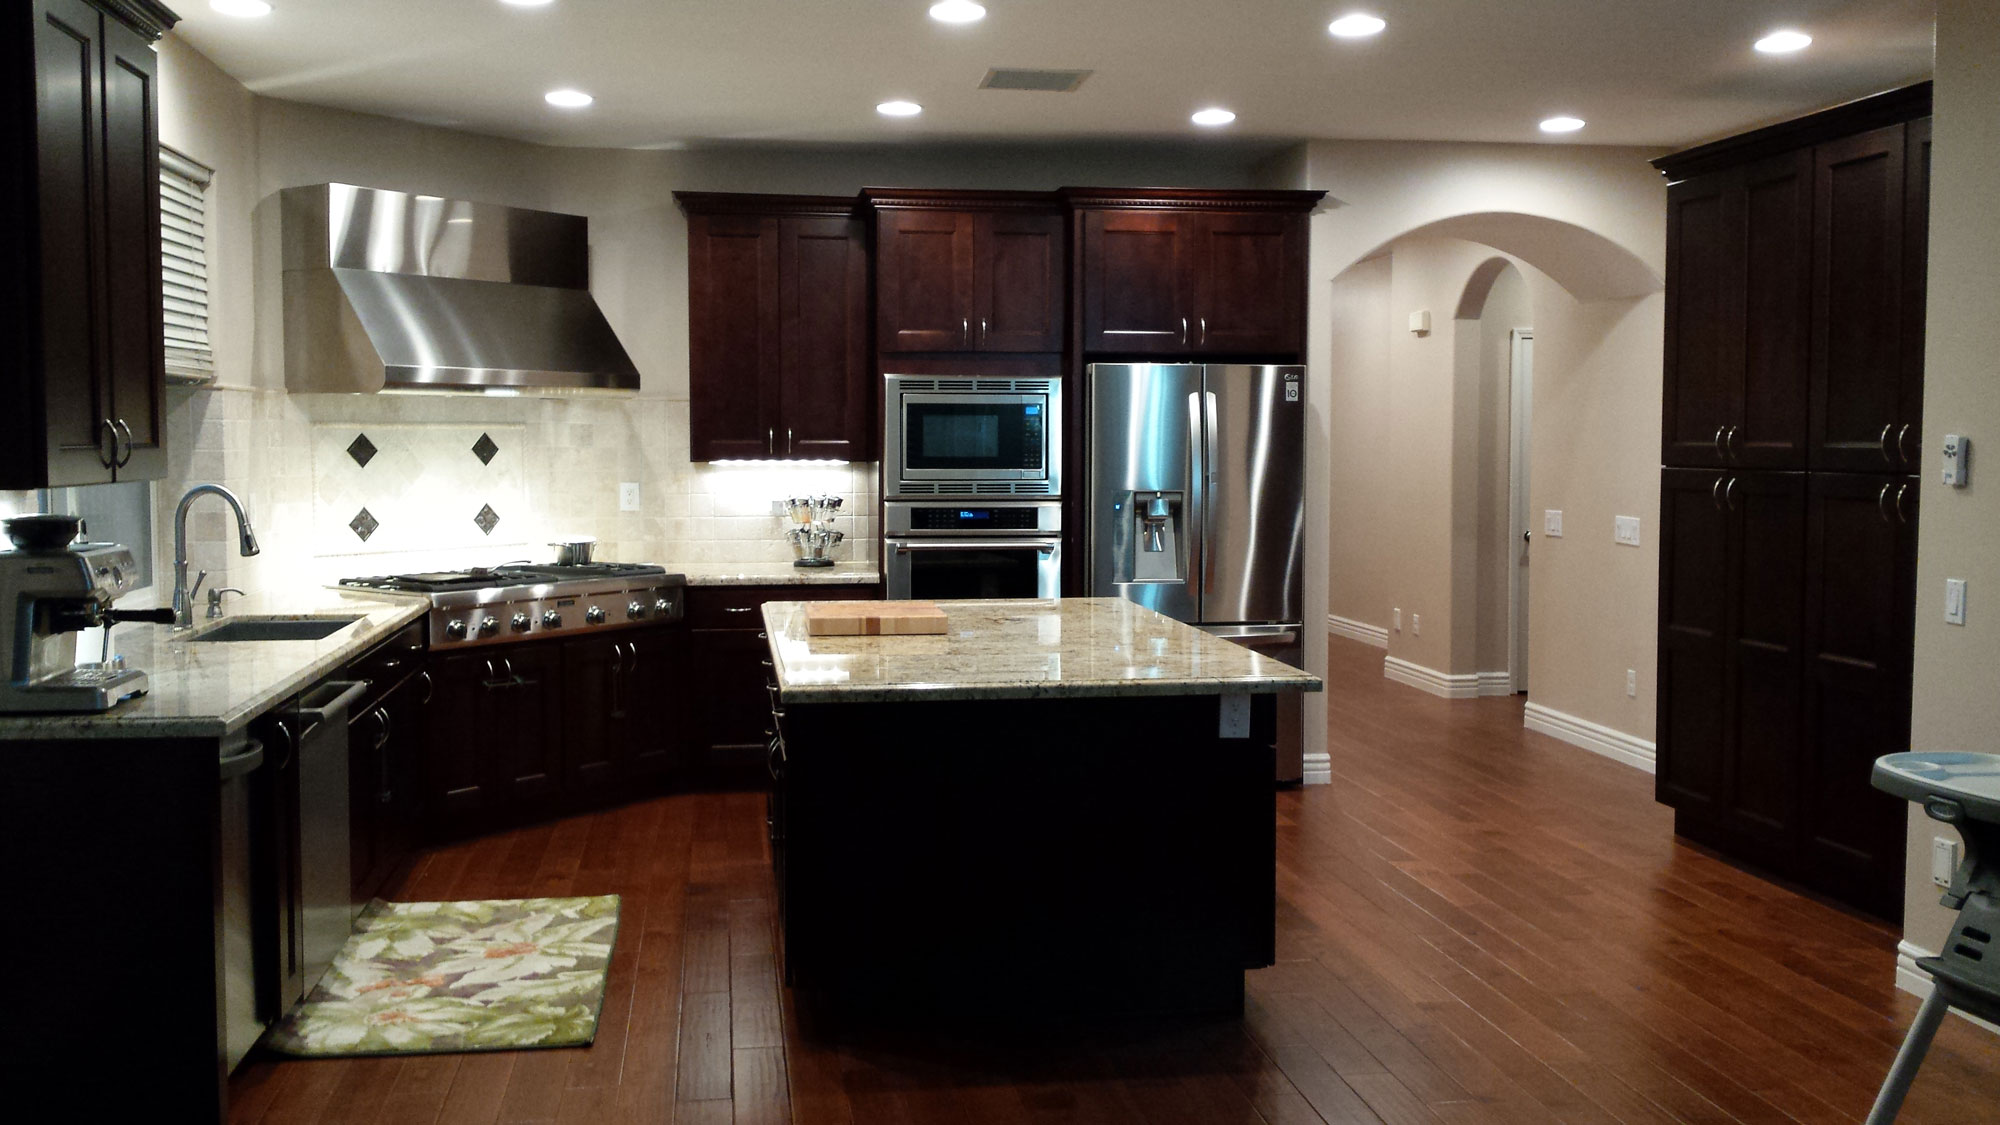 kitchen-remodel-new-cabinets-hardwood-flooring-countertop